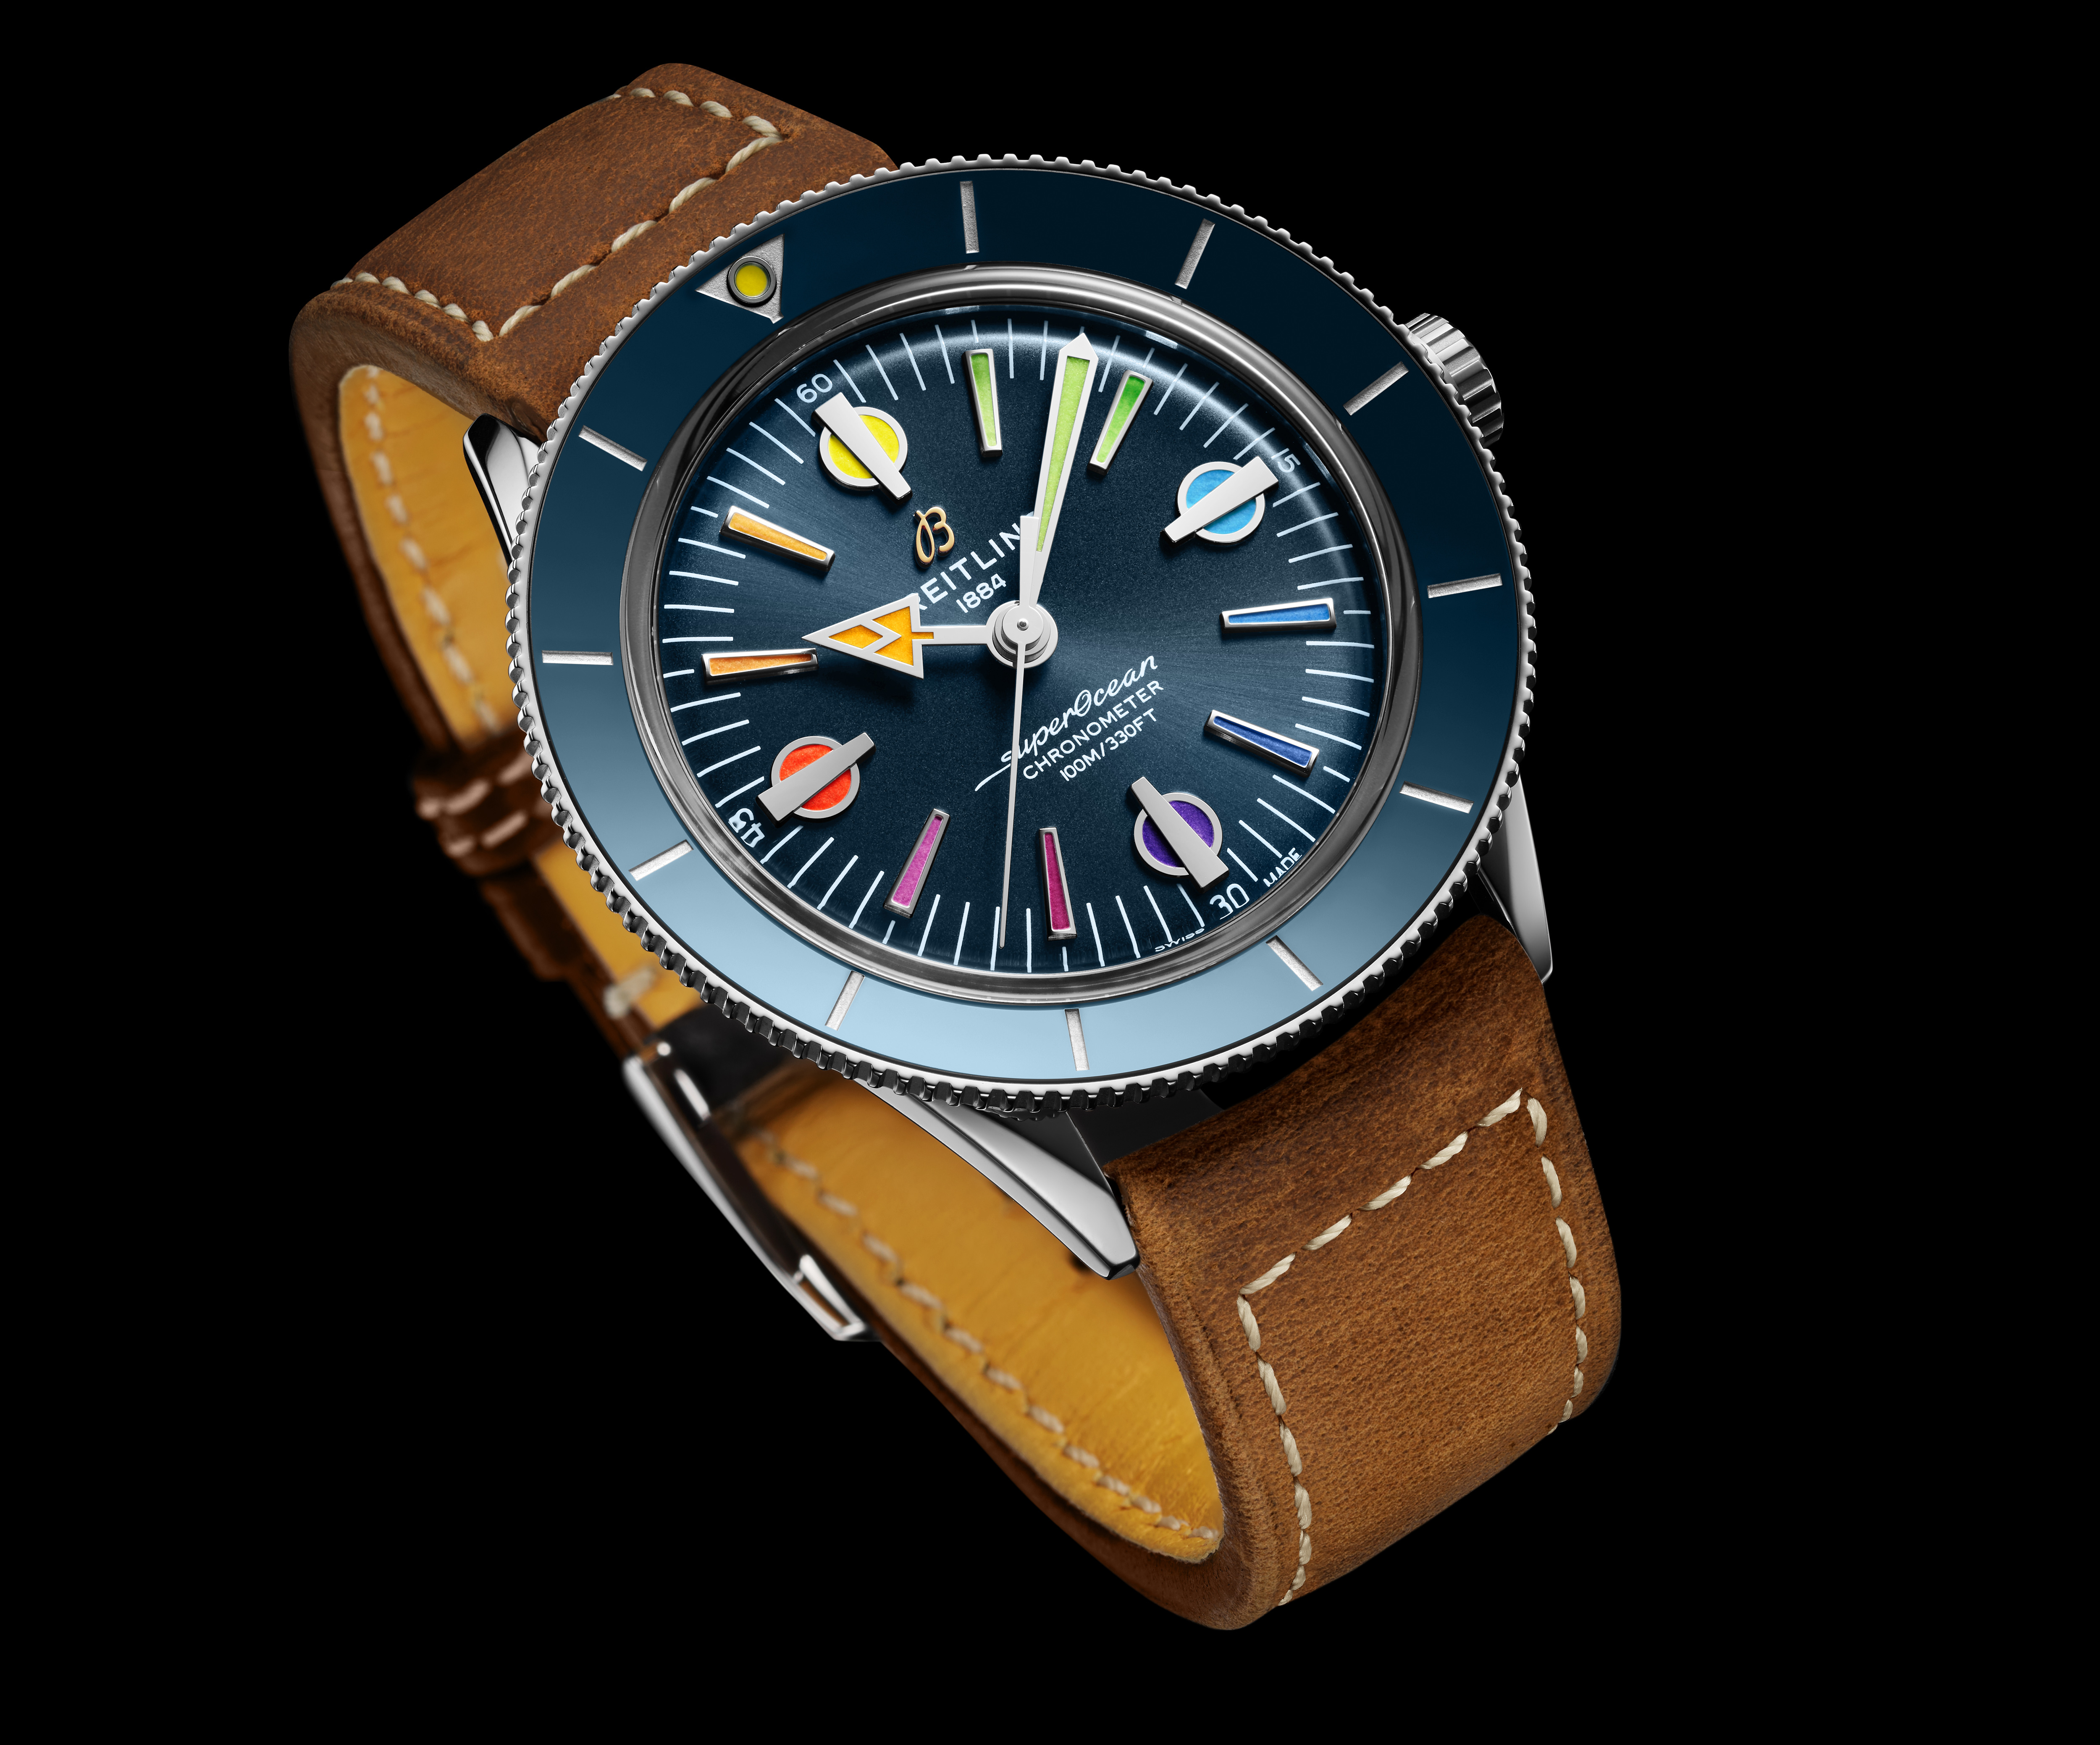 Superocean Heritage '57 Limited Edition II - A new rainbow in support of our frontline heroes